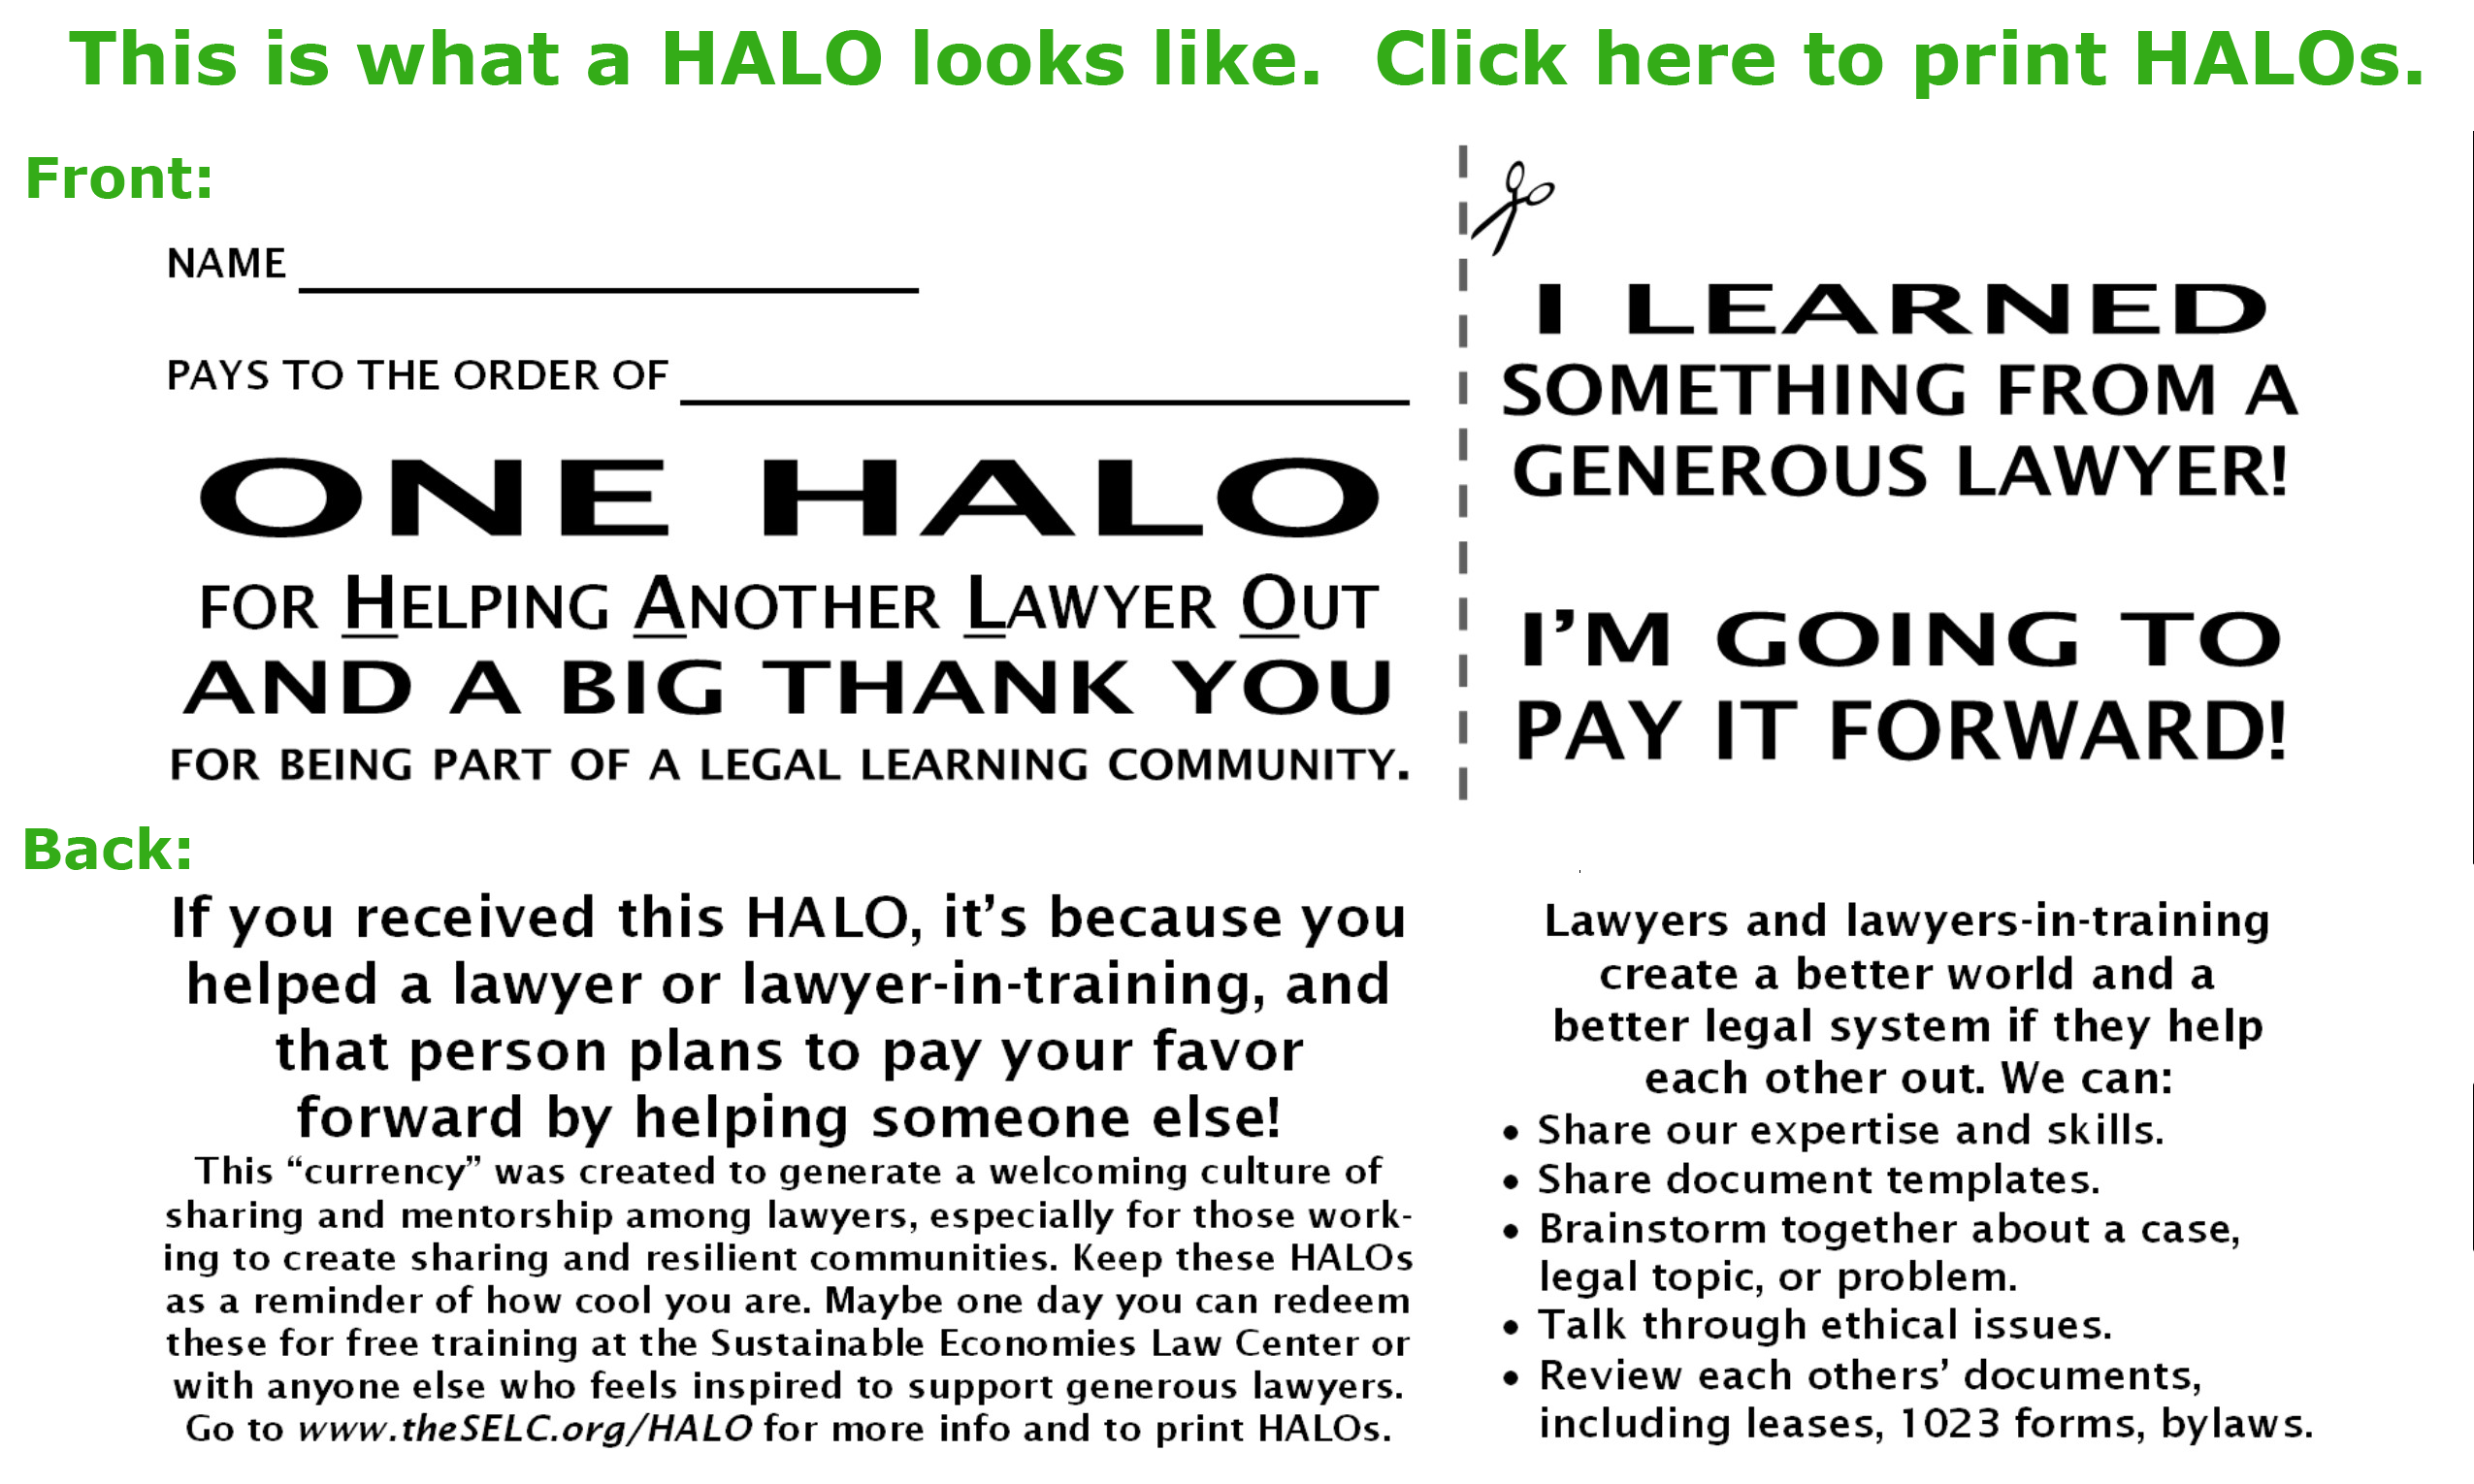 Sample-HALO-1.png